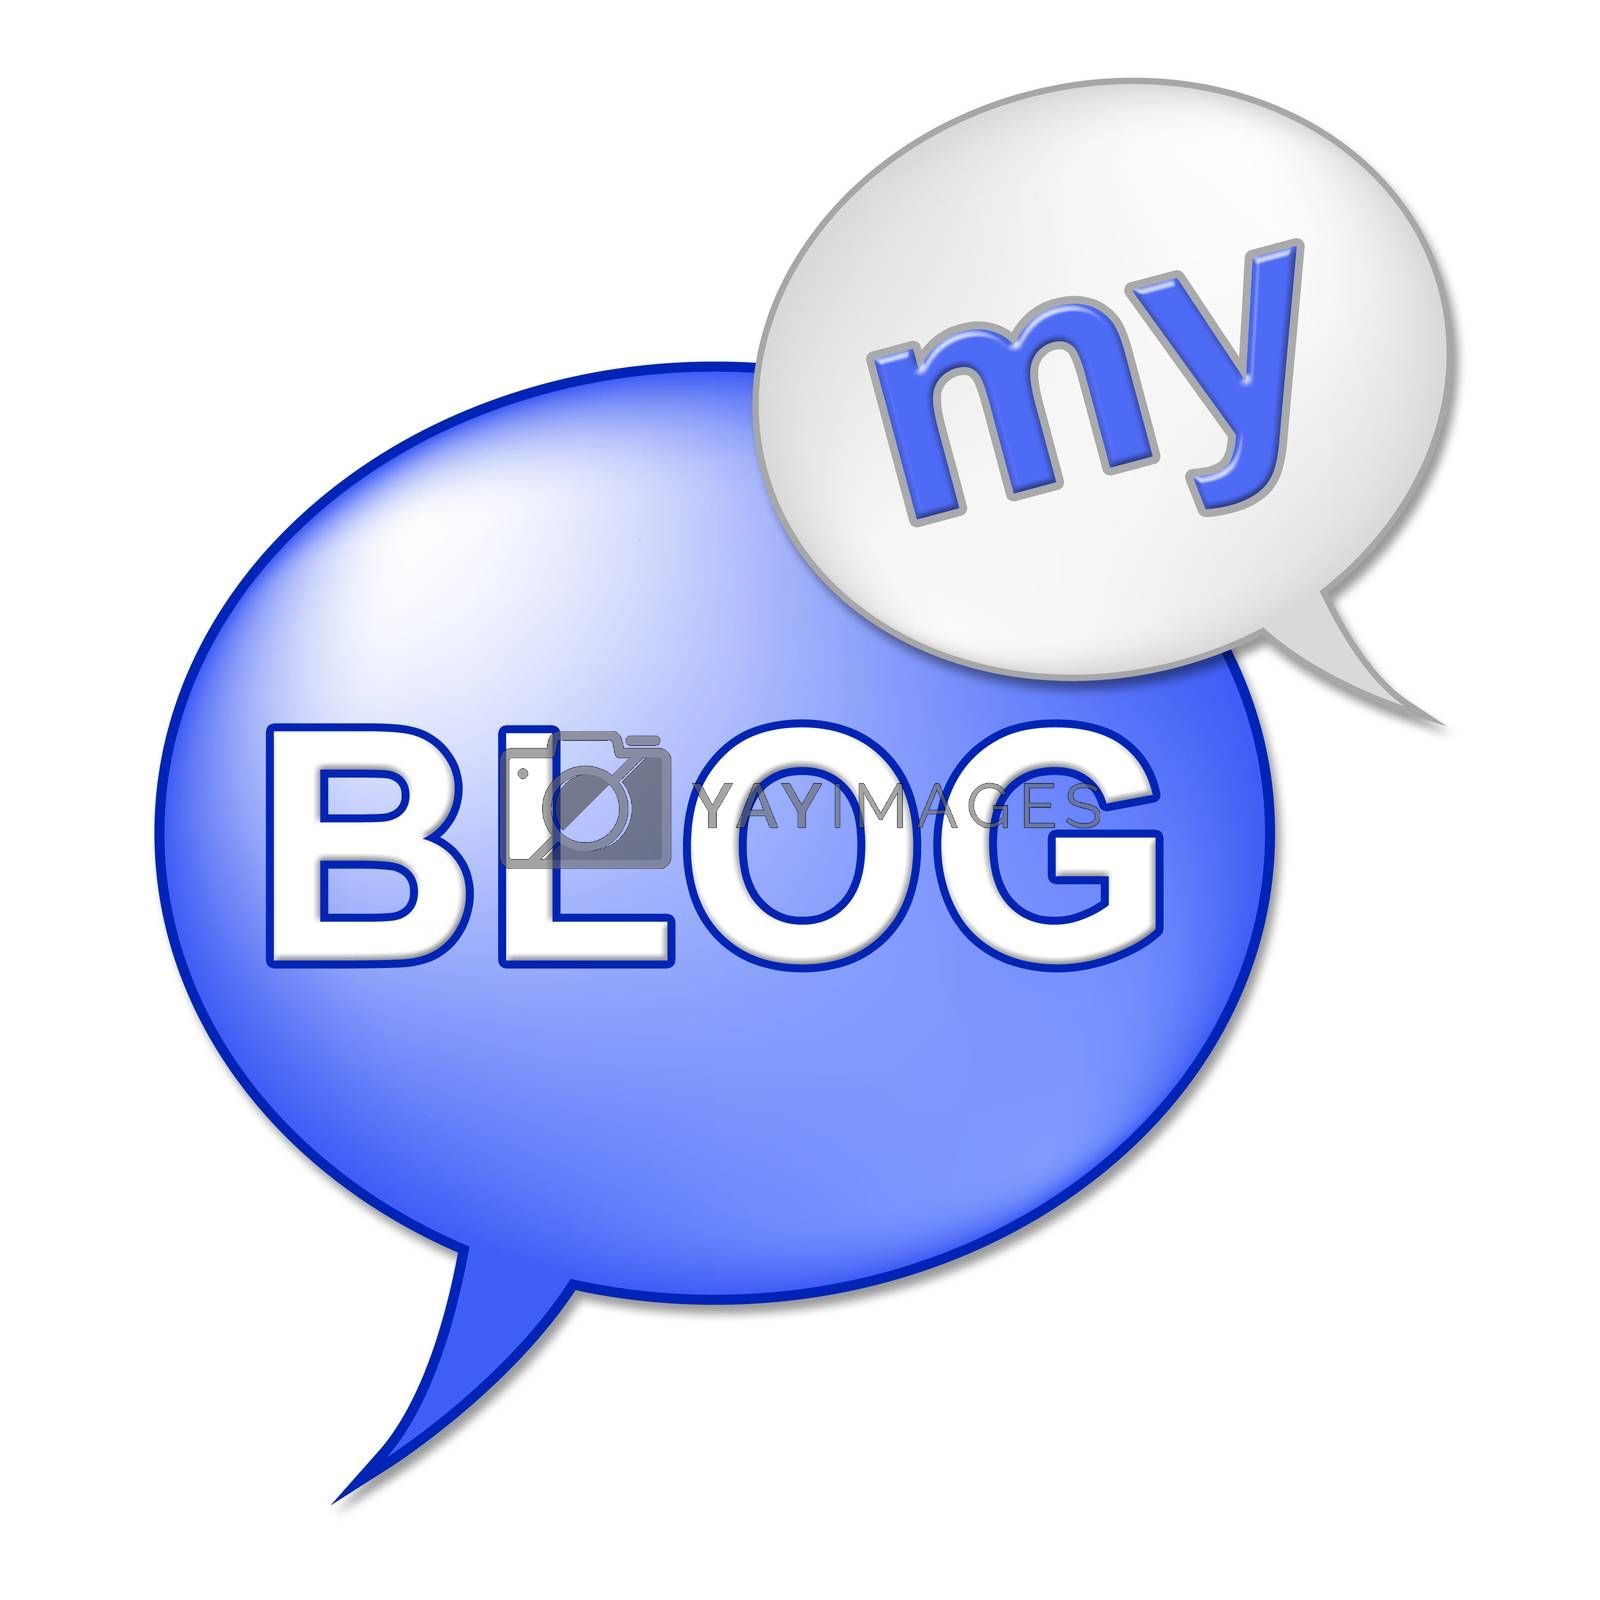 My Blog Sign Means Web Site And Websites by stuartmiles